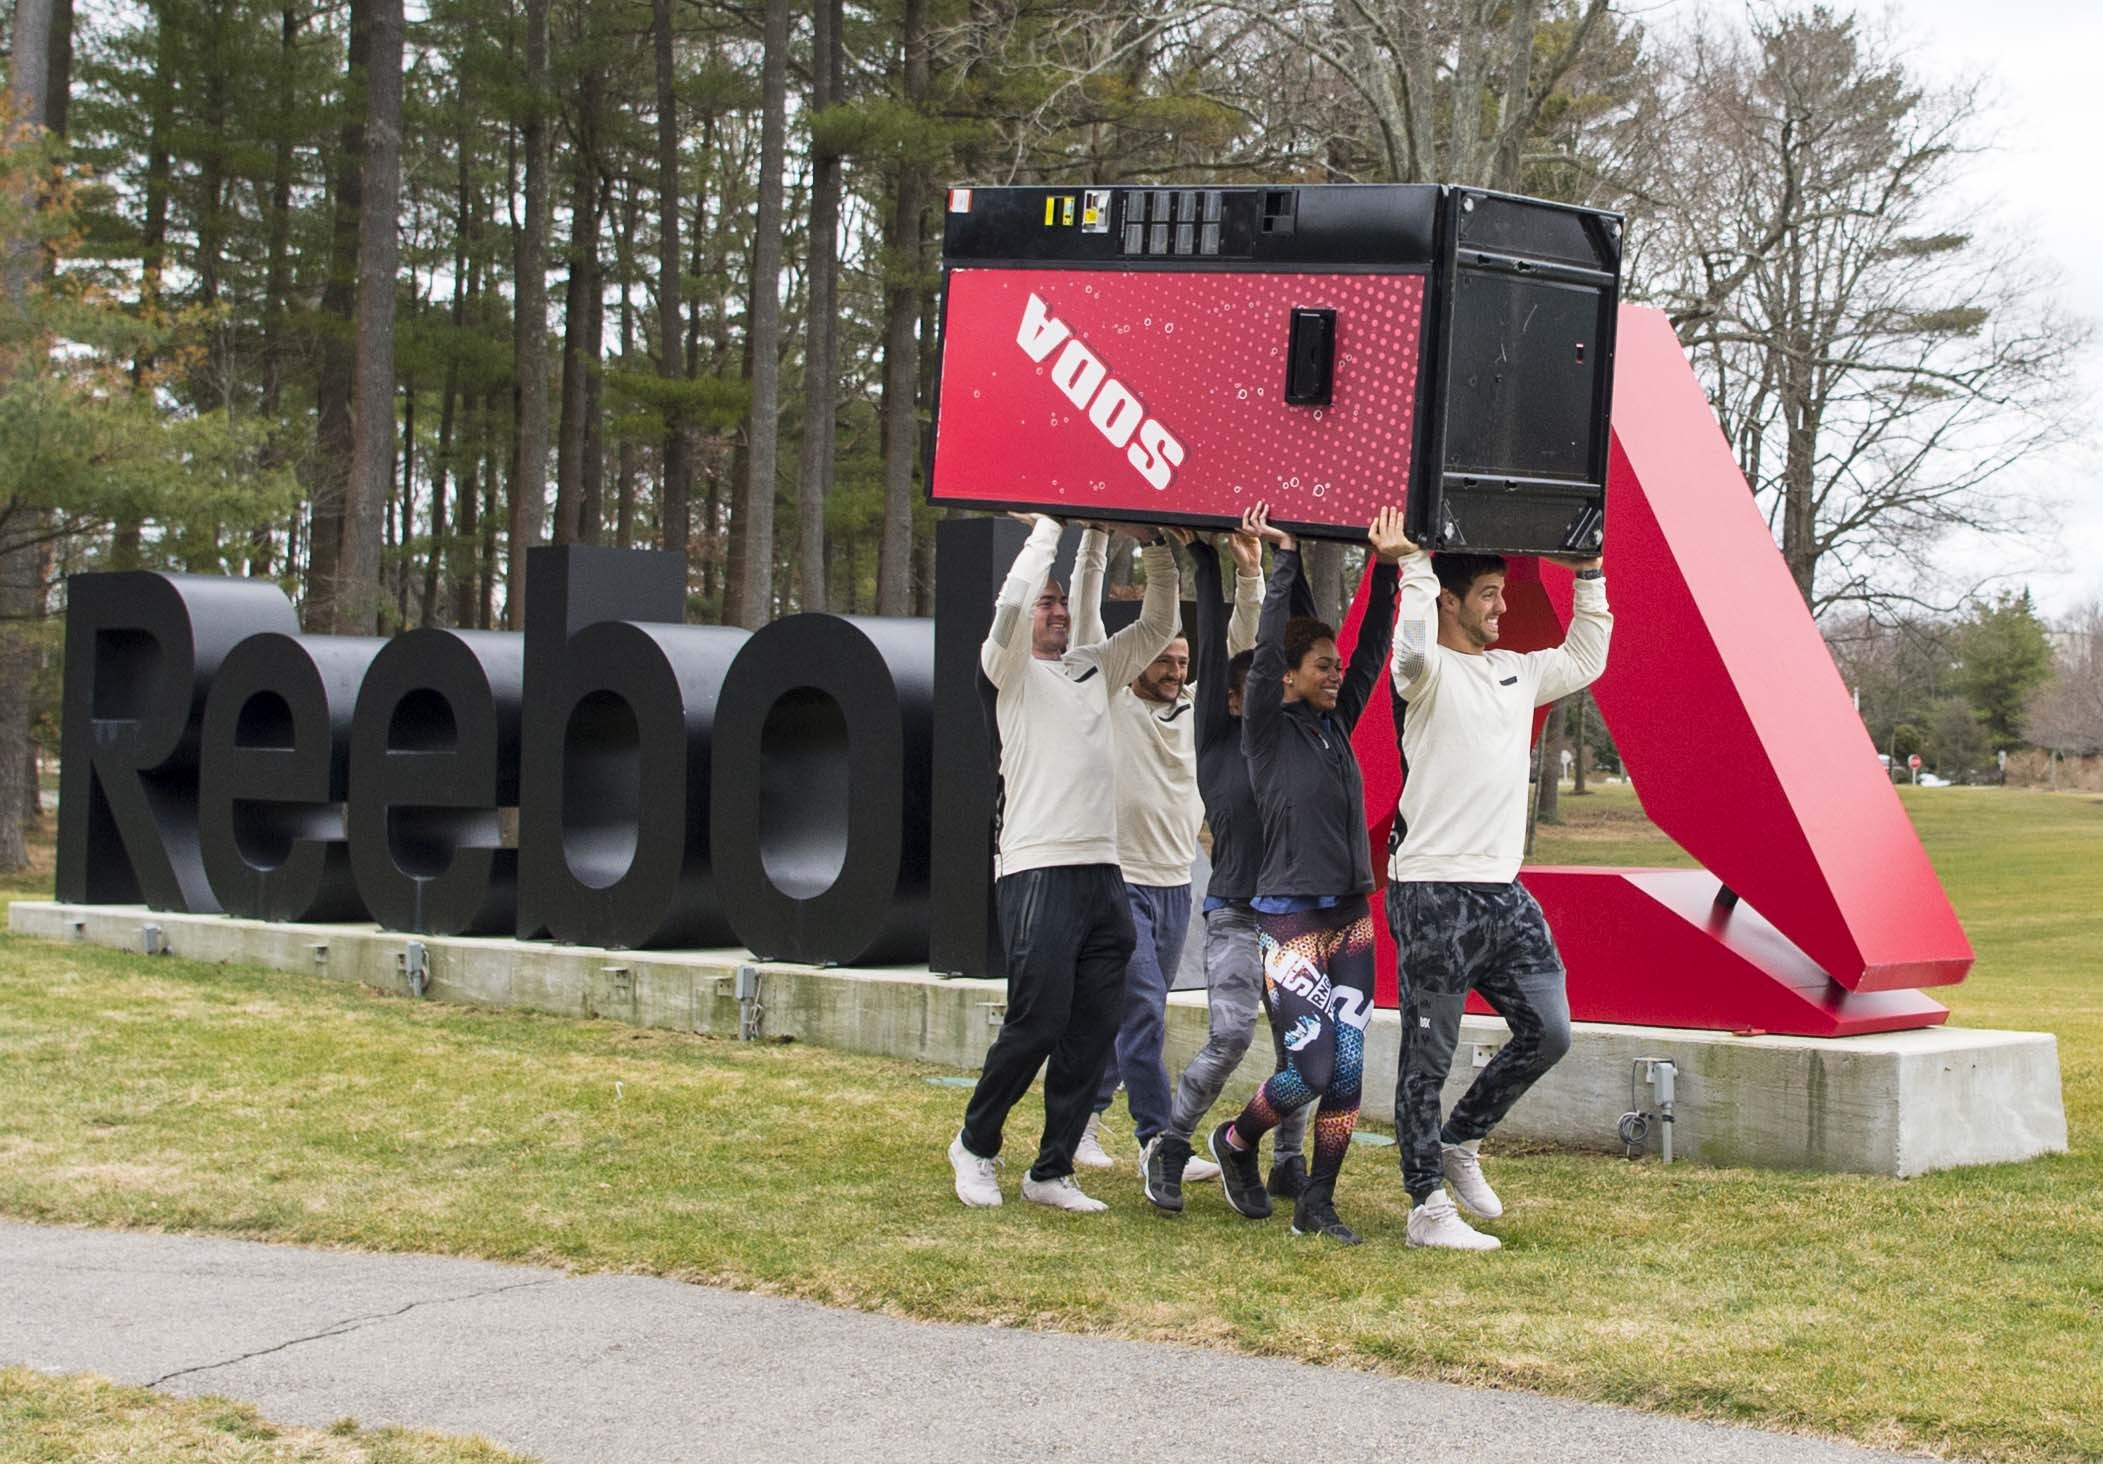 Reebok staff celebrate saying 'See Ya Soda,' at the fitness brand's global HQ in Canton, Mass on March 10.